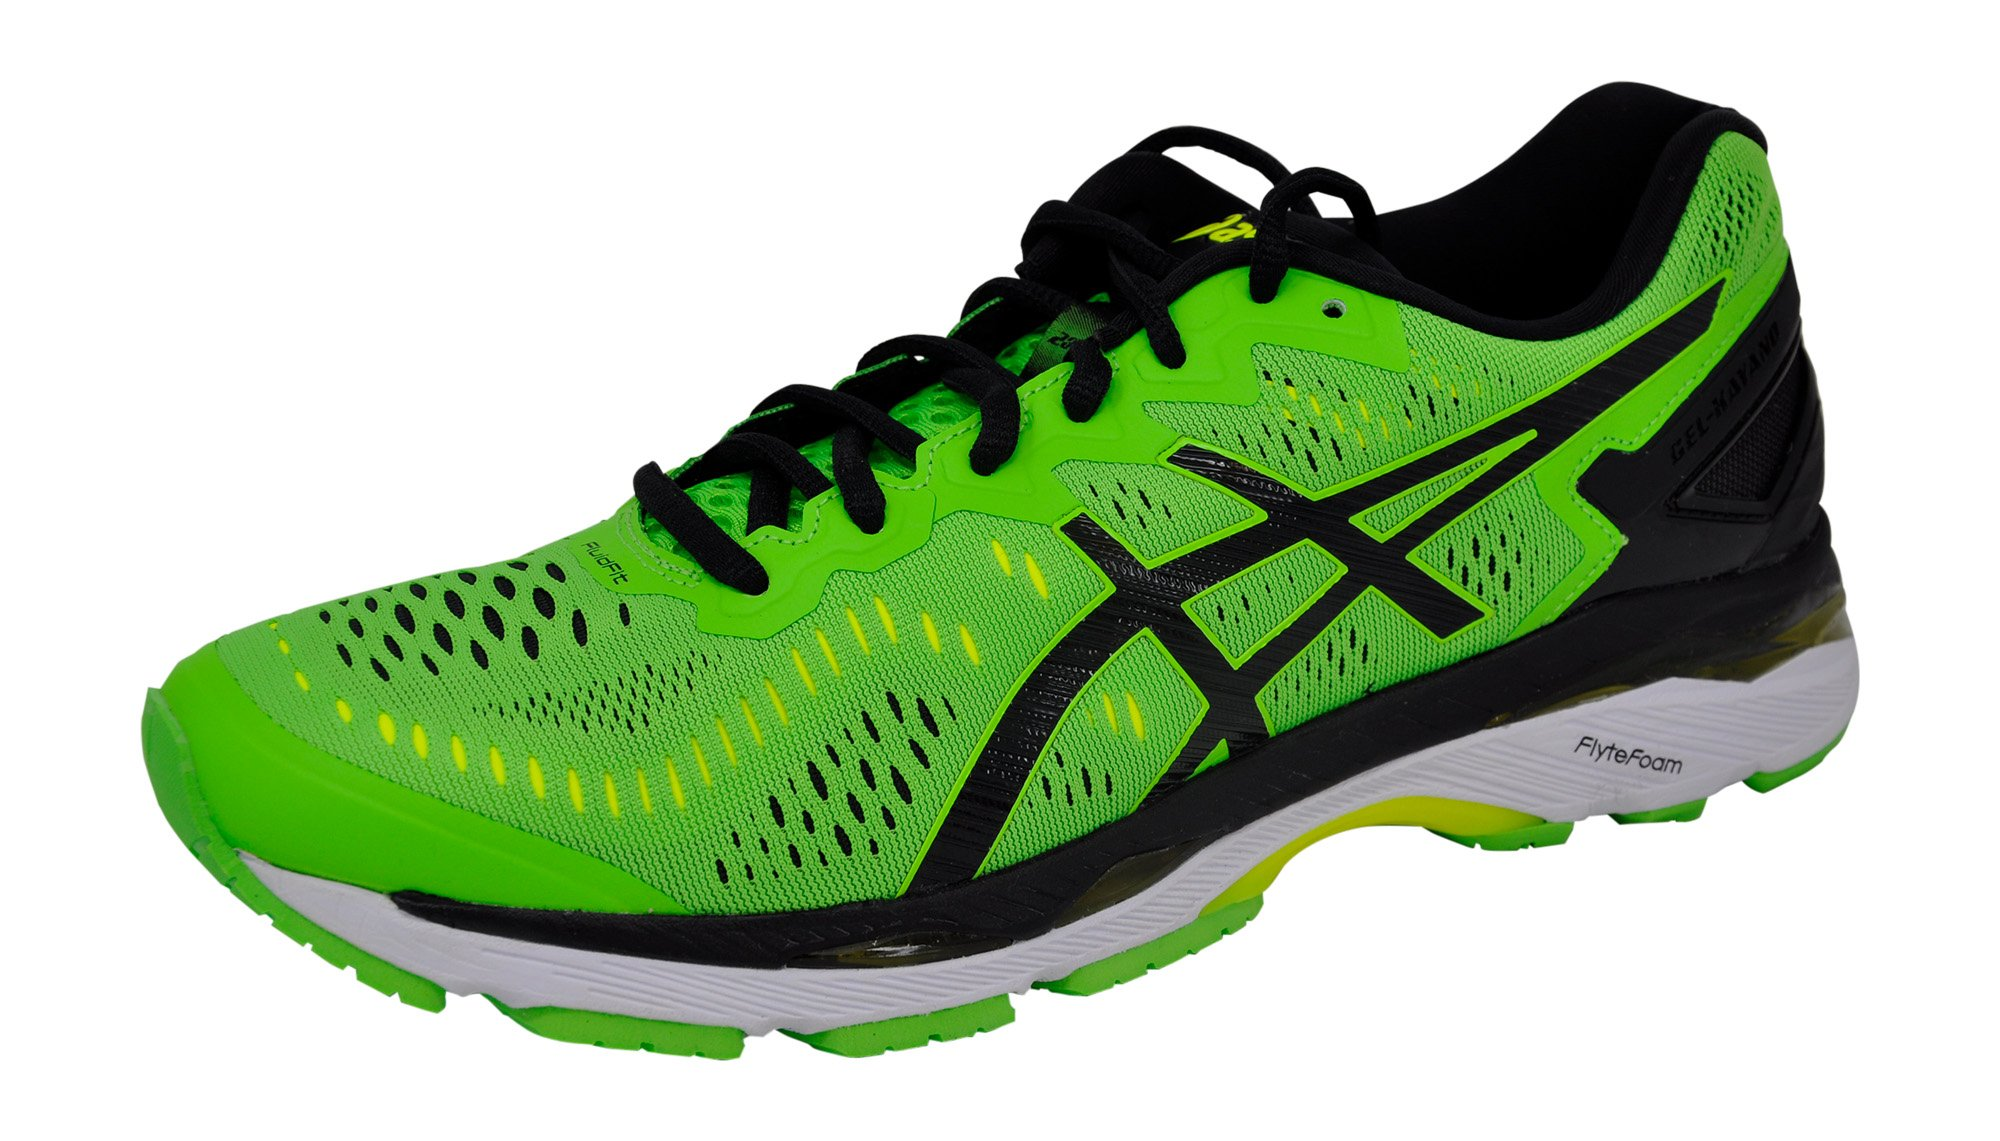 Galleon Asics Mens Gel Kayano 23 Running Shoe Green